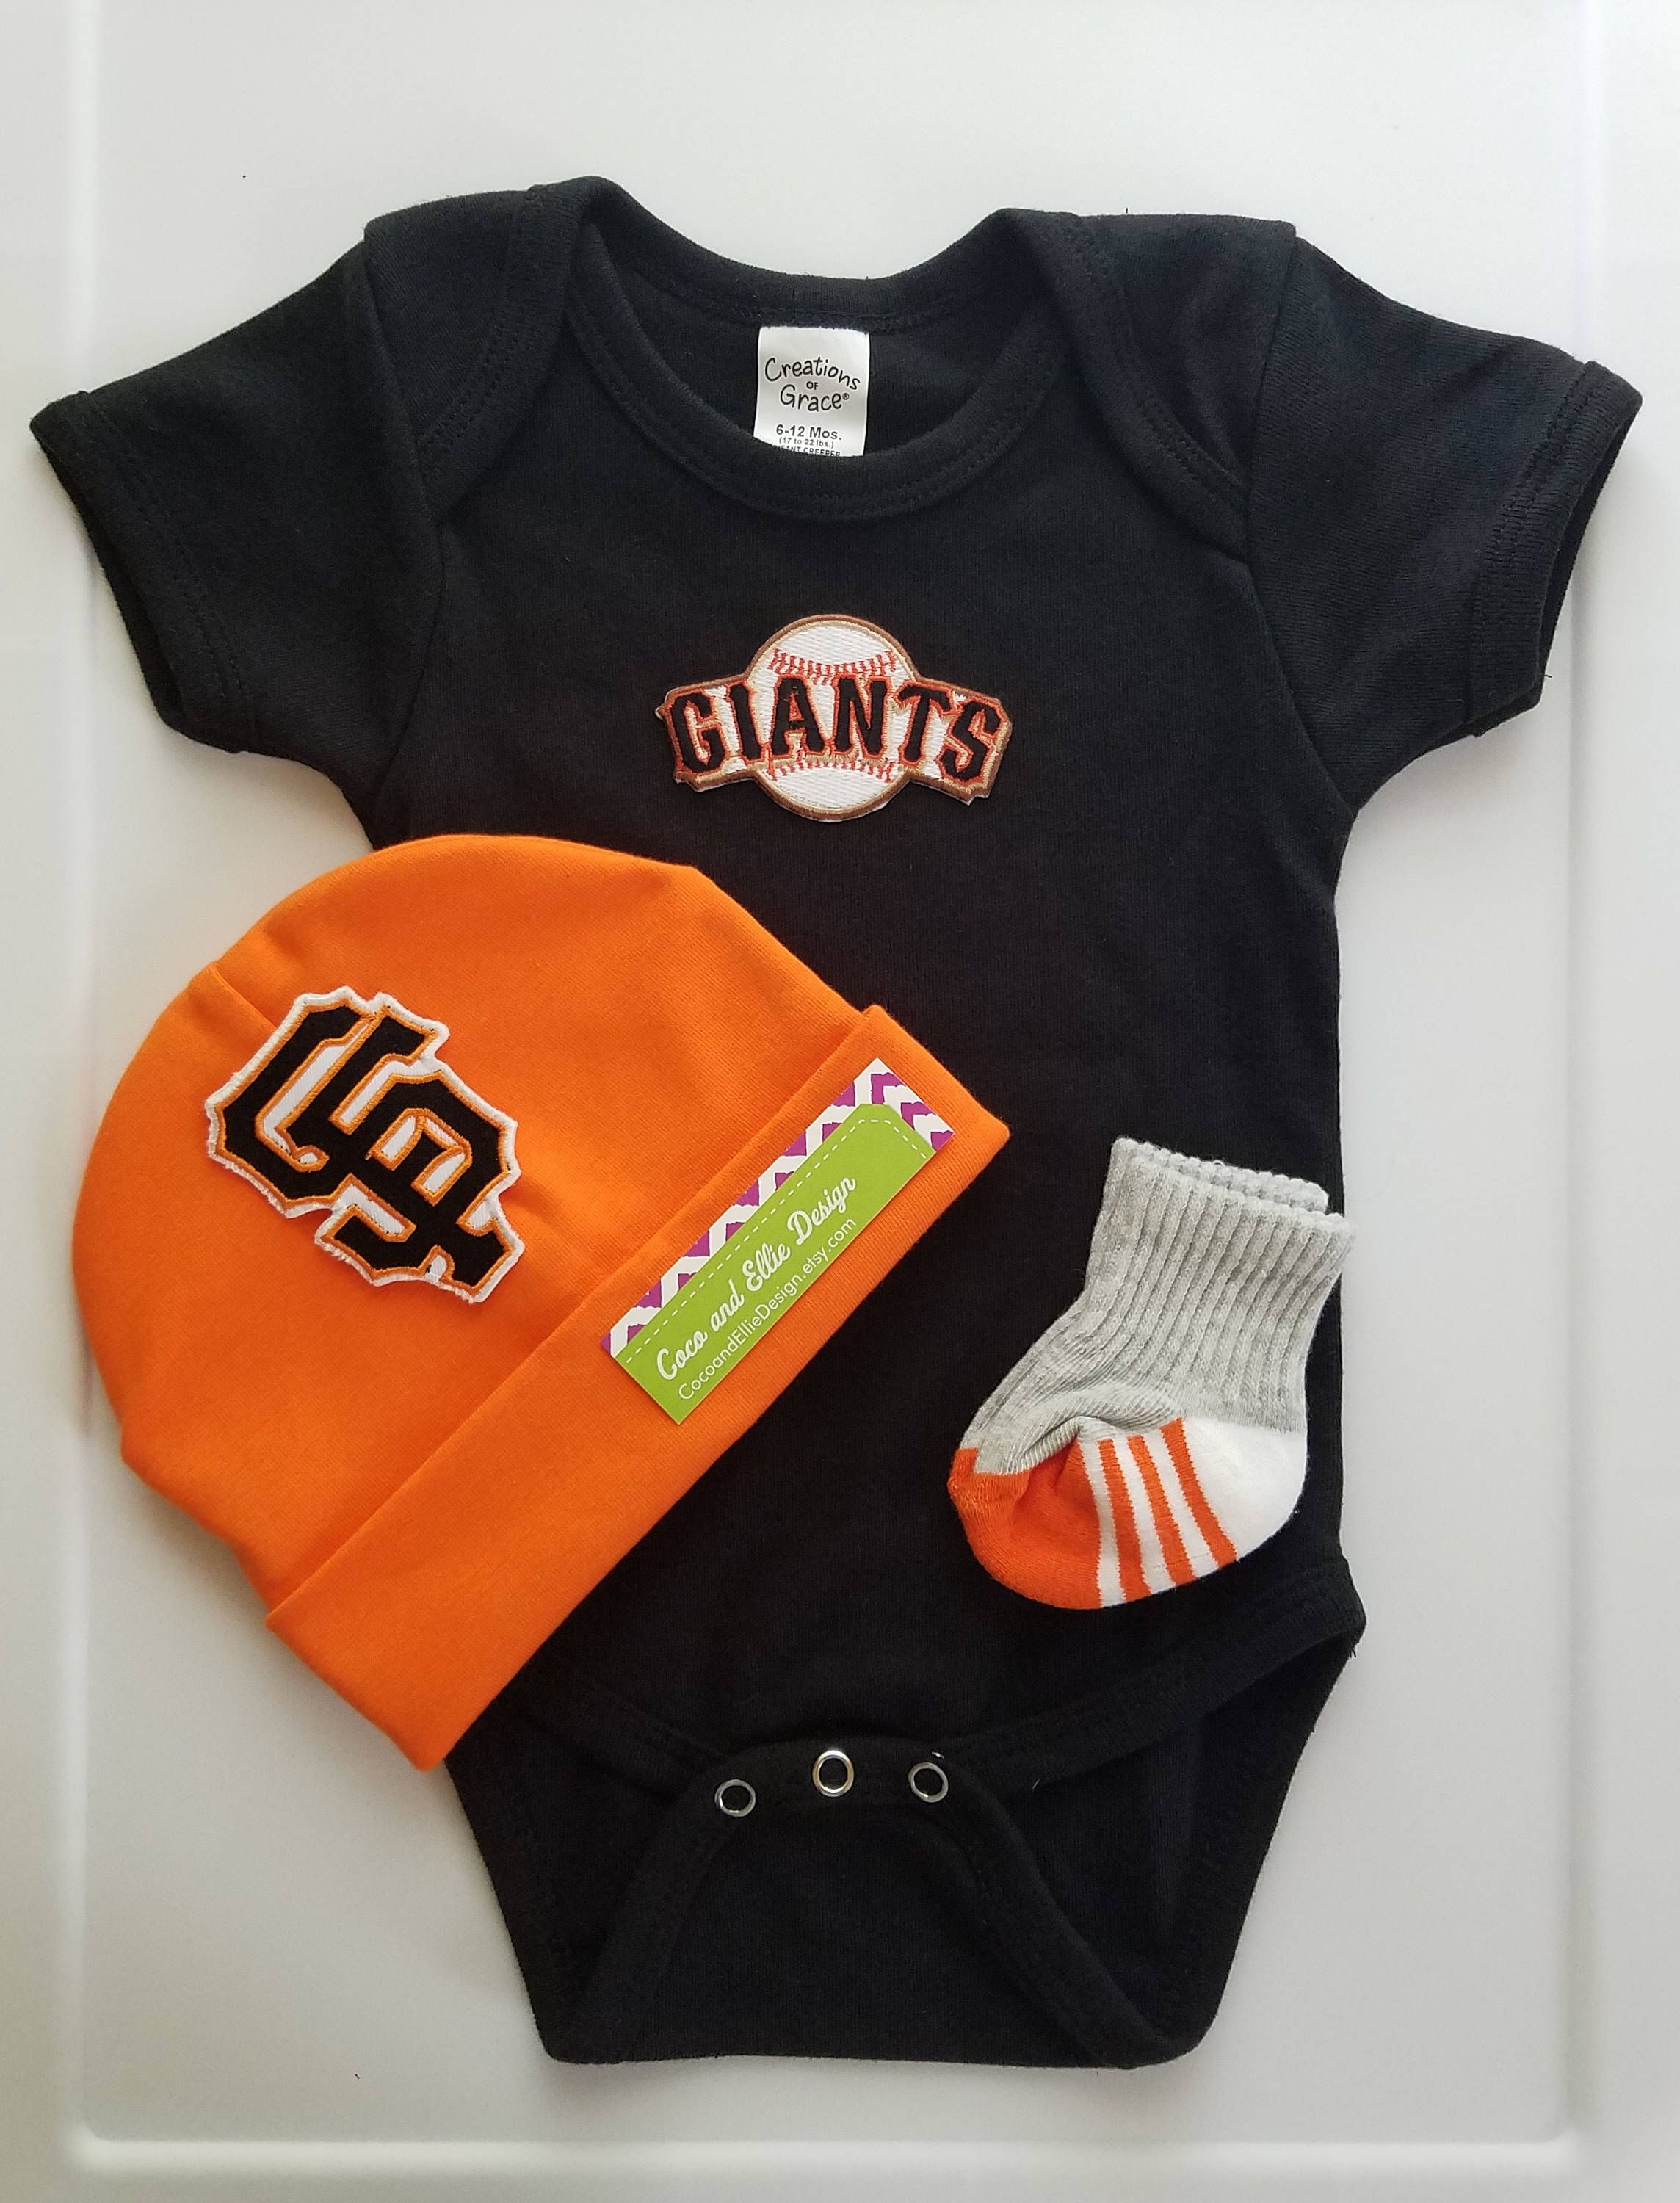 san francisco giants boy outfit with hat-sf giants romper sf giants bodysuit -baby boy sf giants outfit-san francisco giants gift for baby by ... 27b46d45c